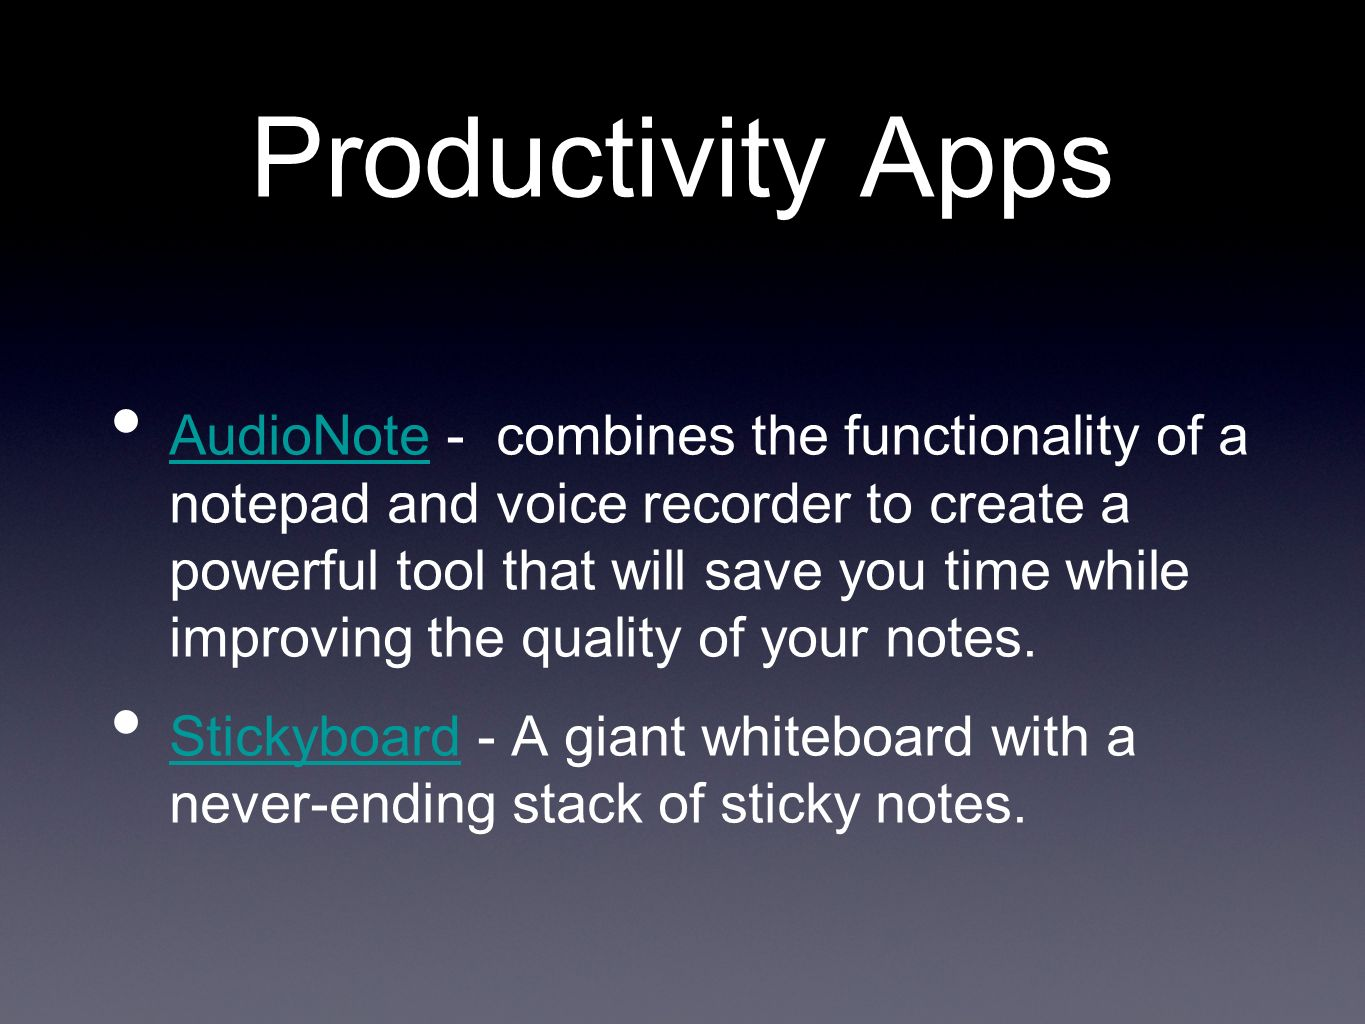 Productivity Apps AudioNote - combines the functionality of a notepad and voice recorder to create a powerful tool that will save you time while improving the quality of your notes.